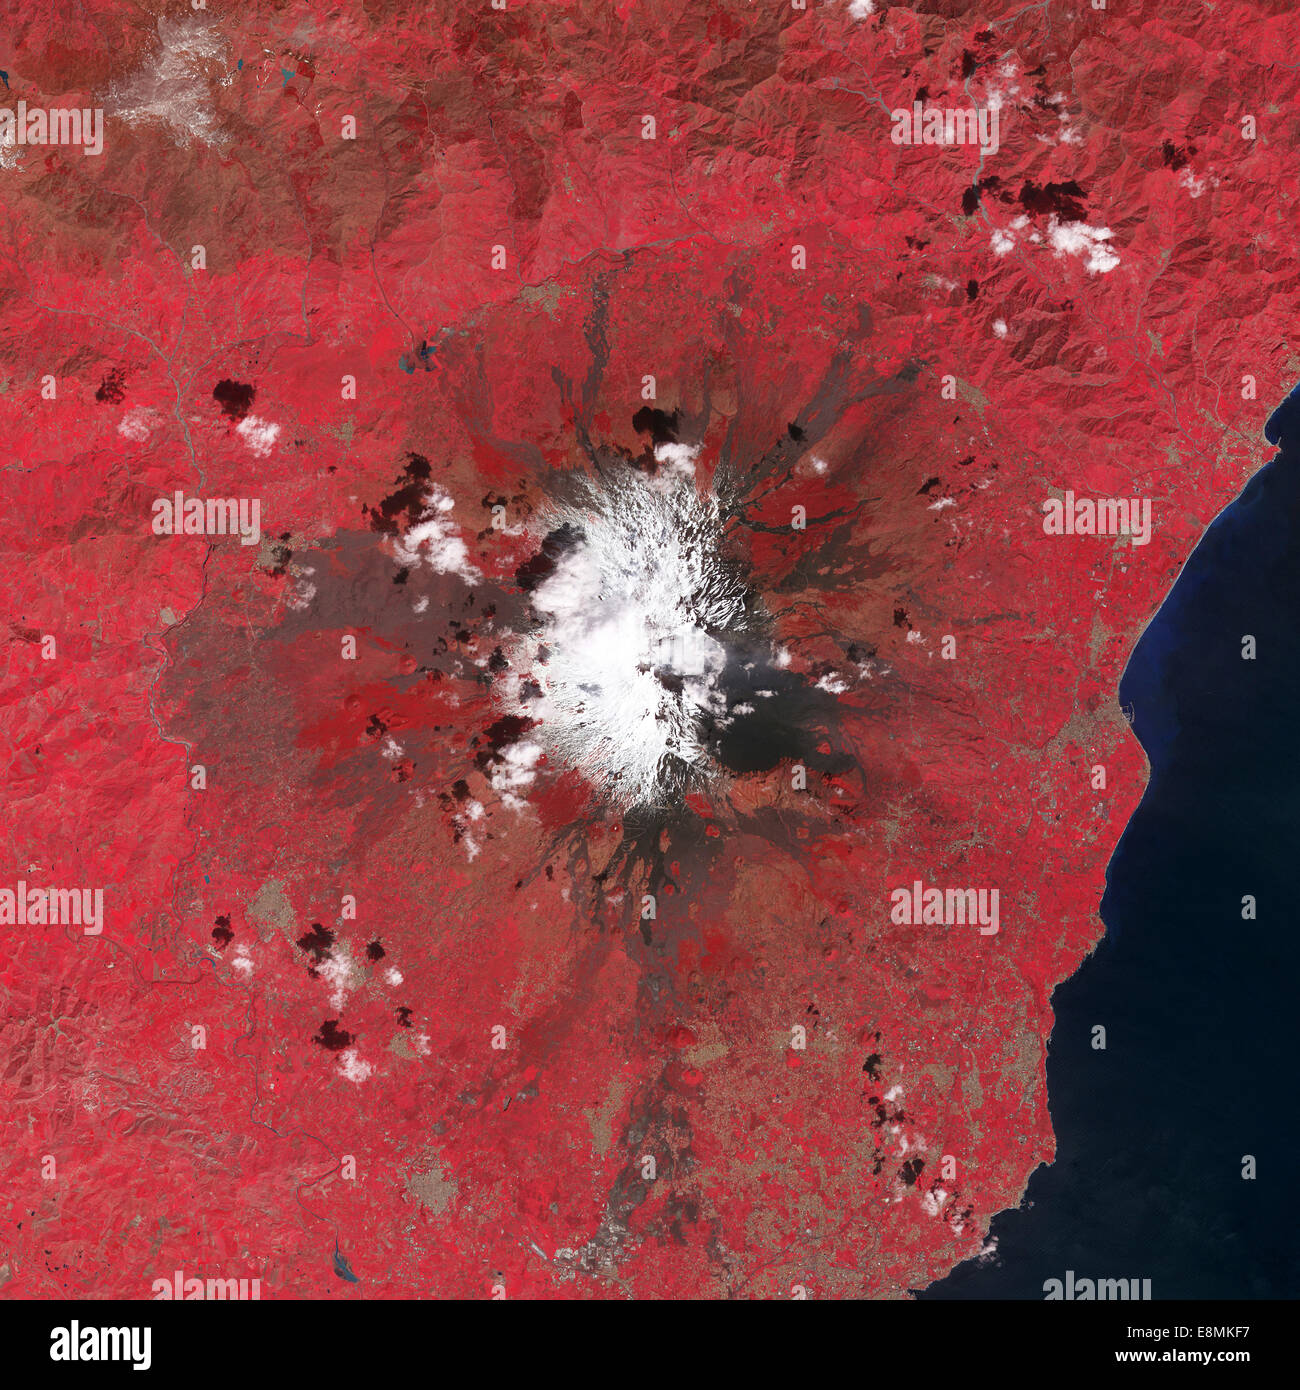 March 31, 2013 - This false-color satellite image shows several vents near the summit of Mount Etna emitting plumes - Stock Image